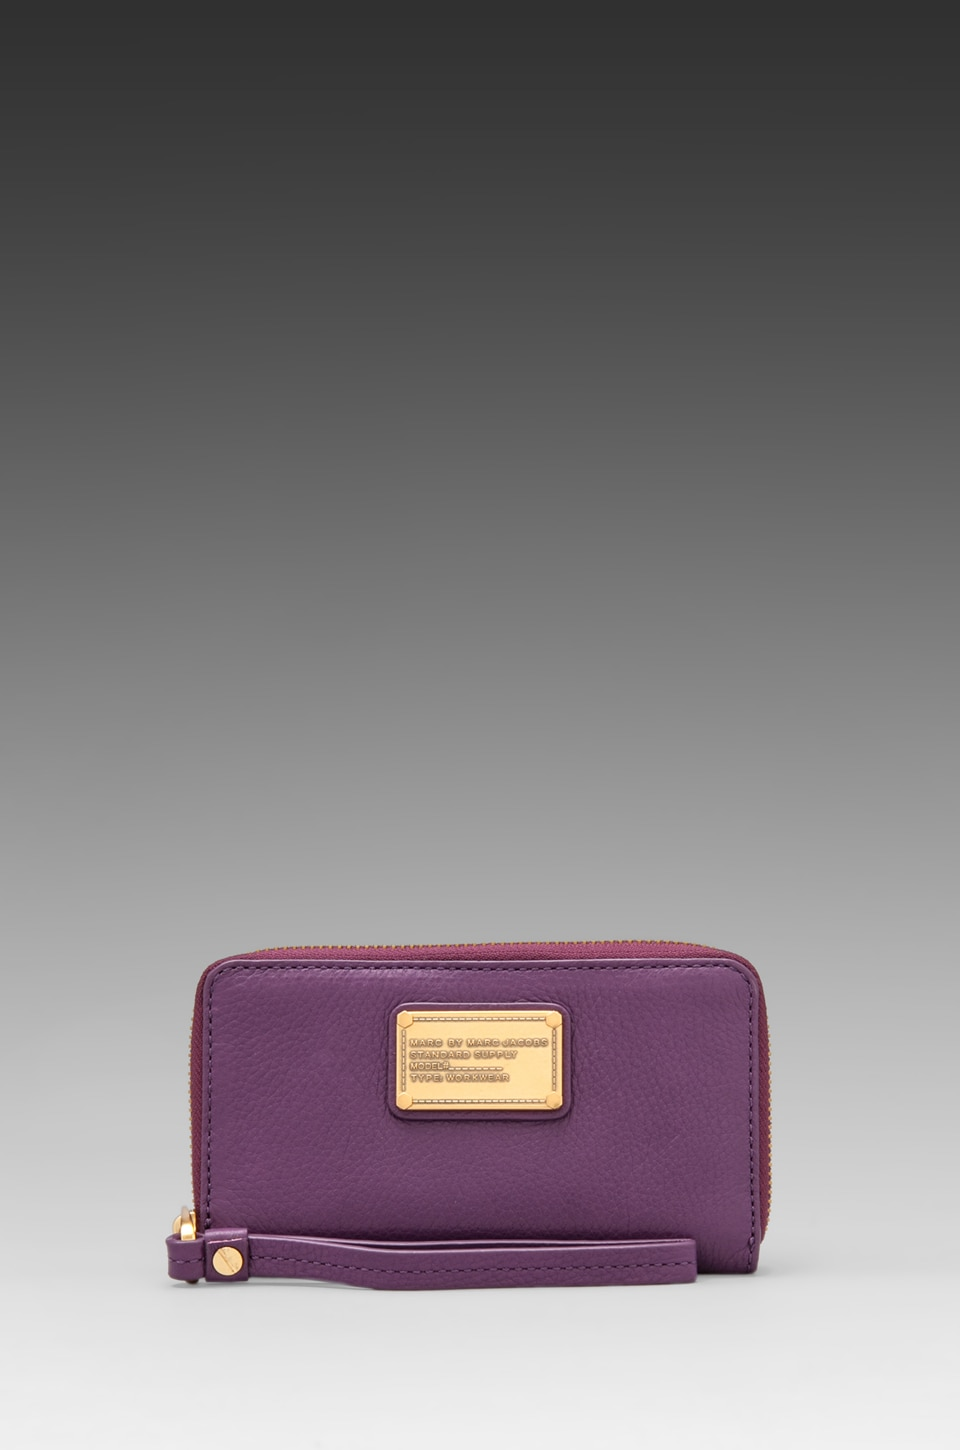 Marc by Marc Jacobs Classic Q Wingman in Pansy Purple